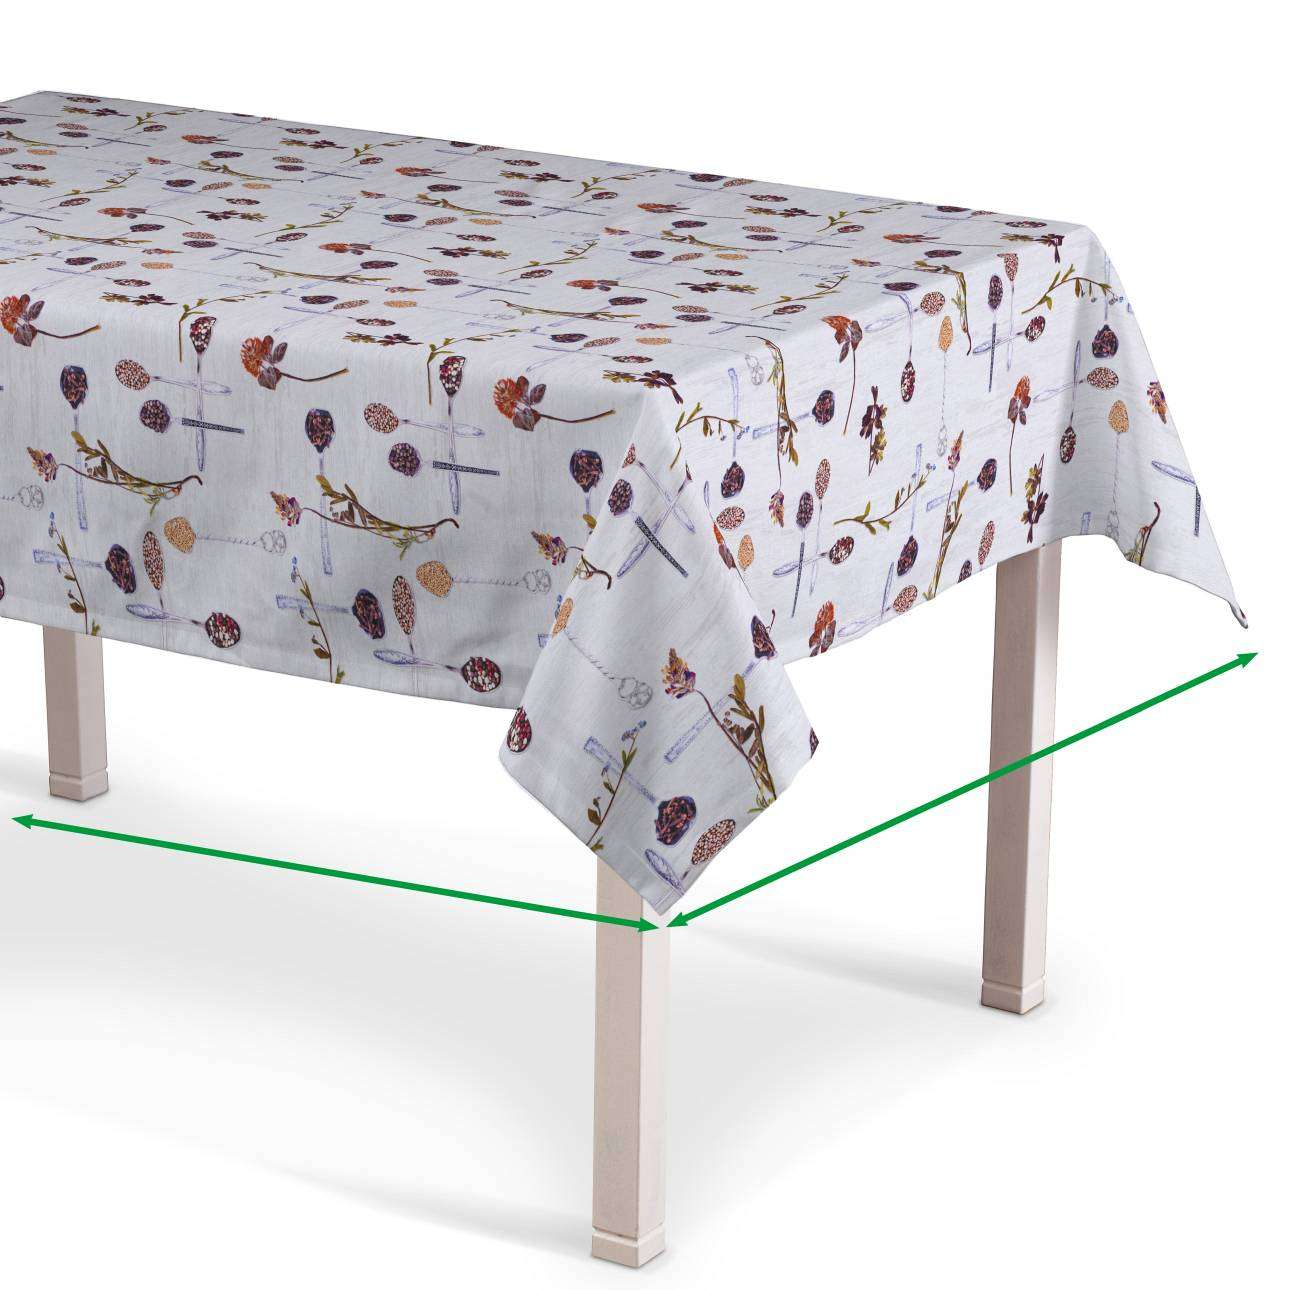 Rectangular tablecloth in collection Flowers, fabric: 140-11